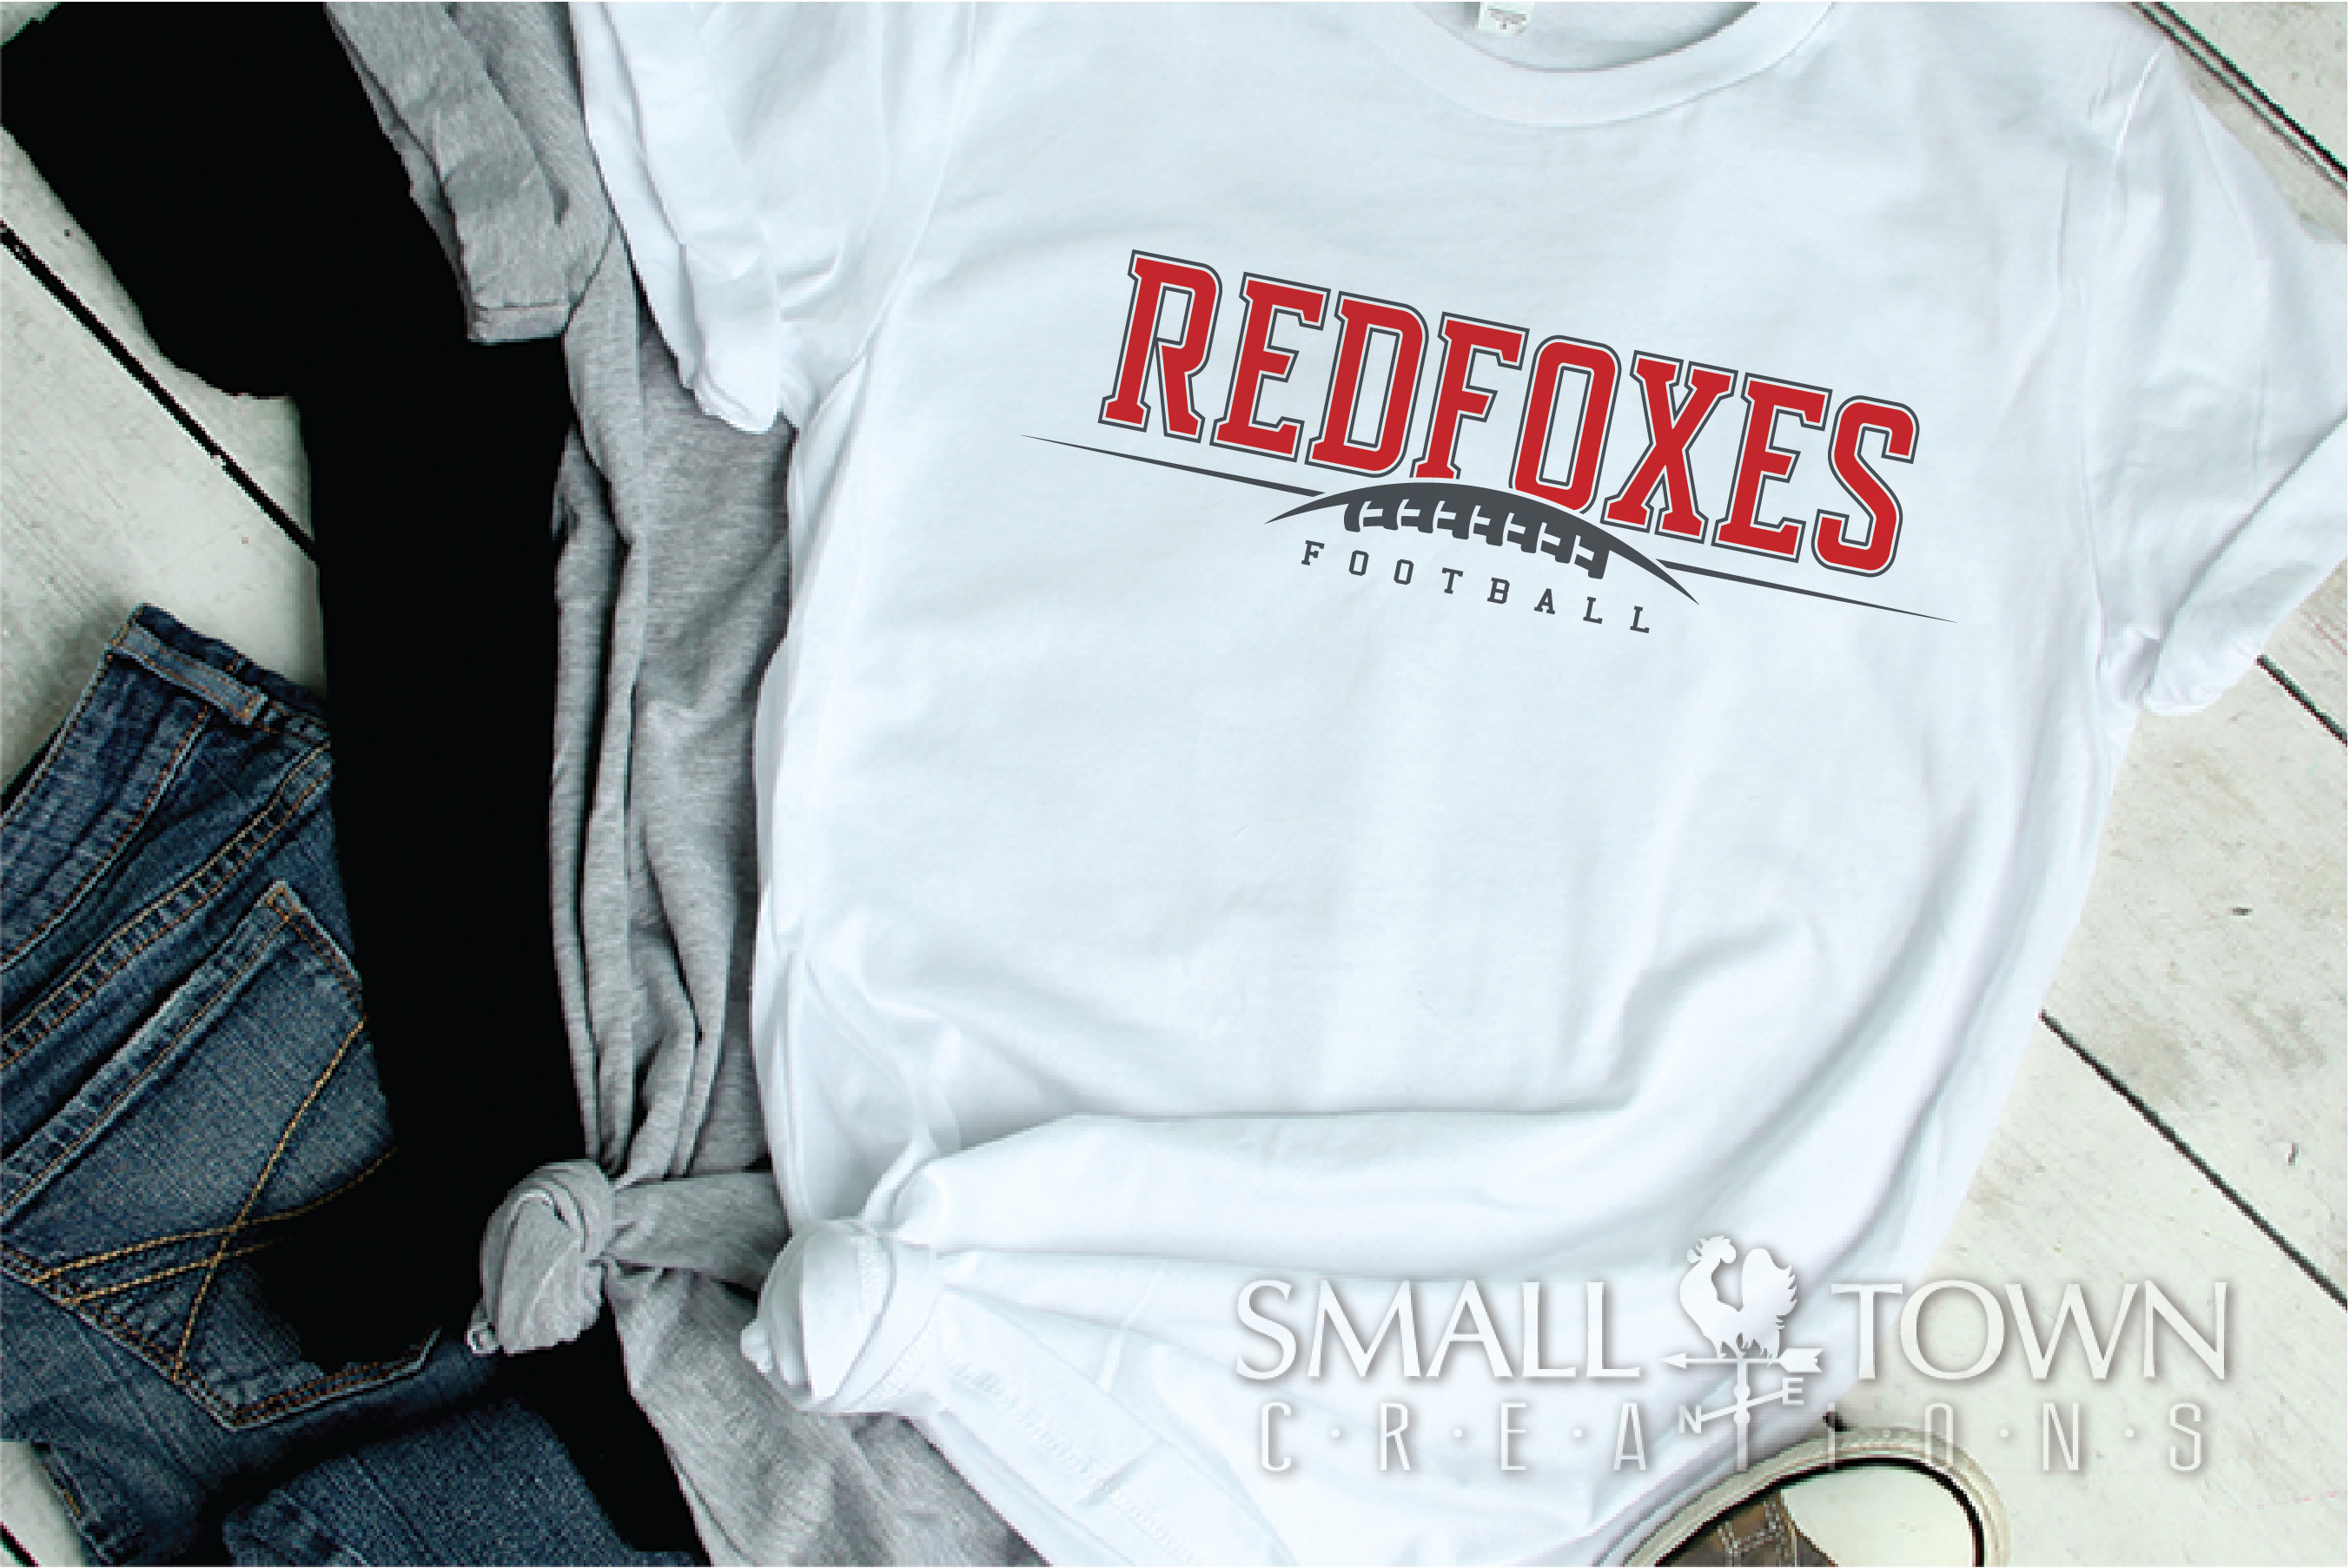 Redfoxes Football Team, Team, Sport, PRINT, CUT & DESIGN example image 2